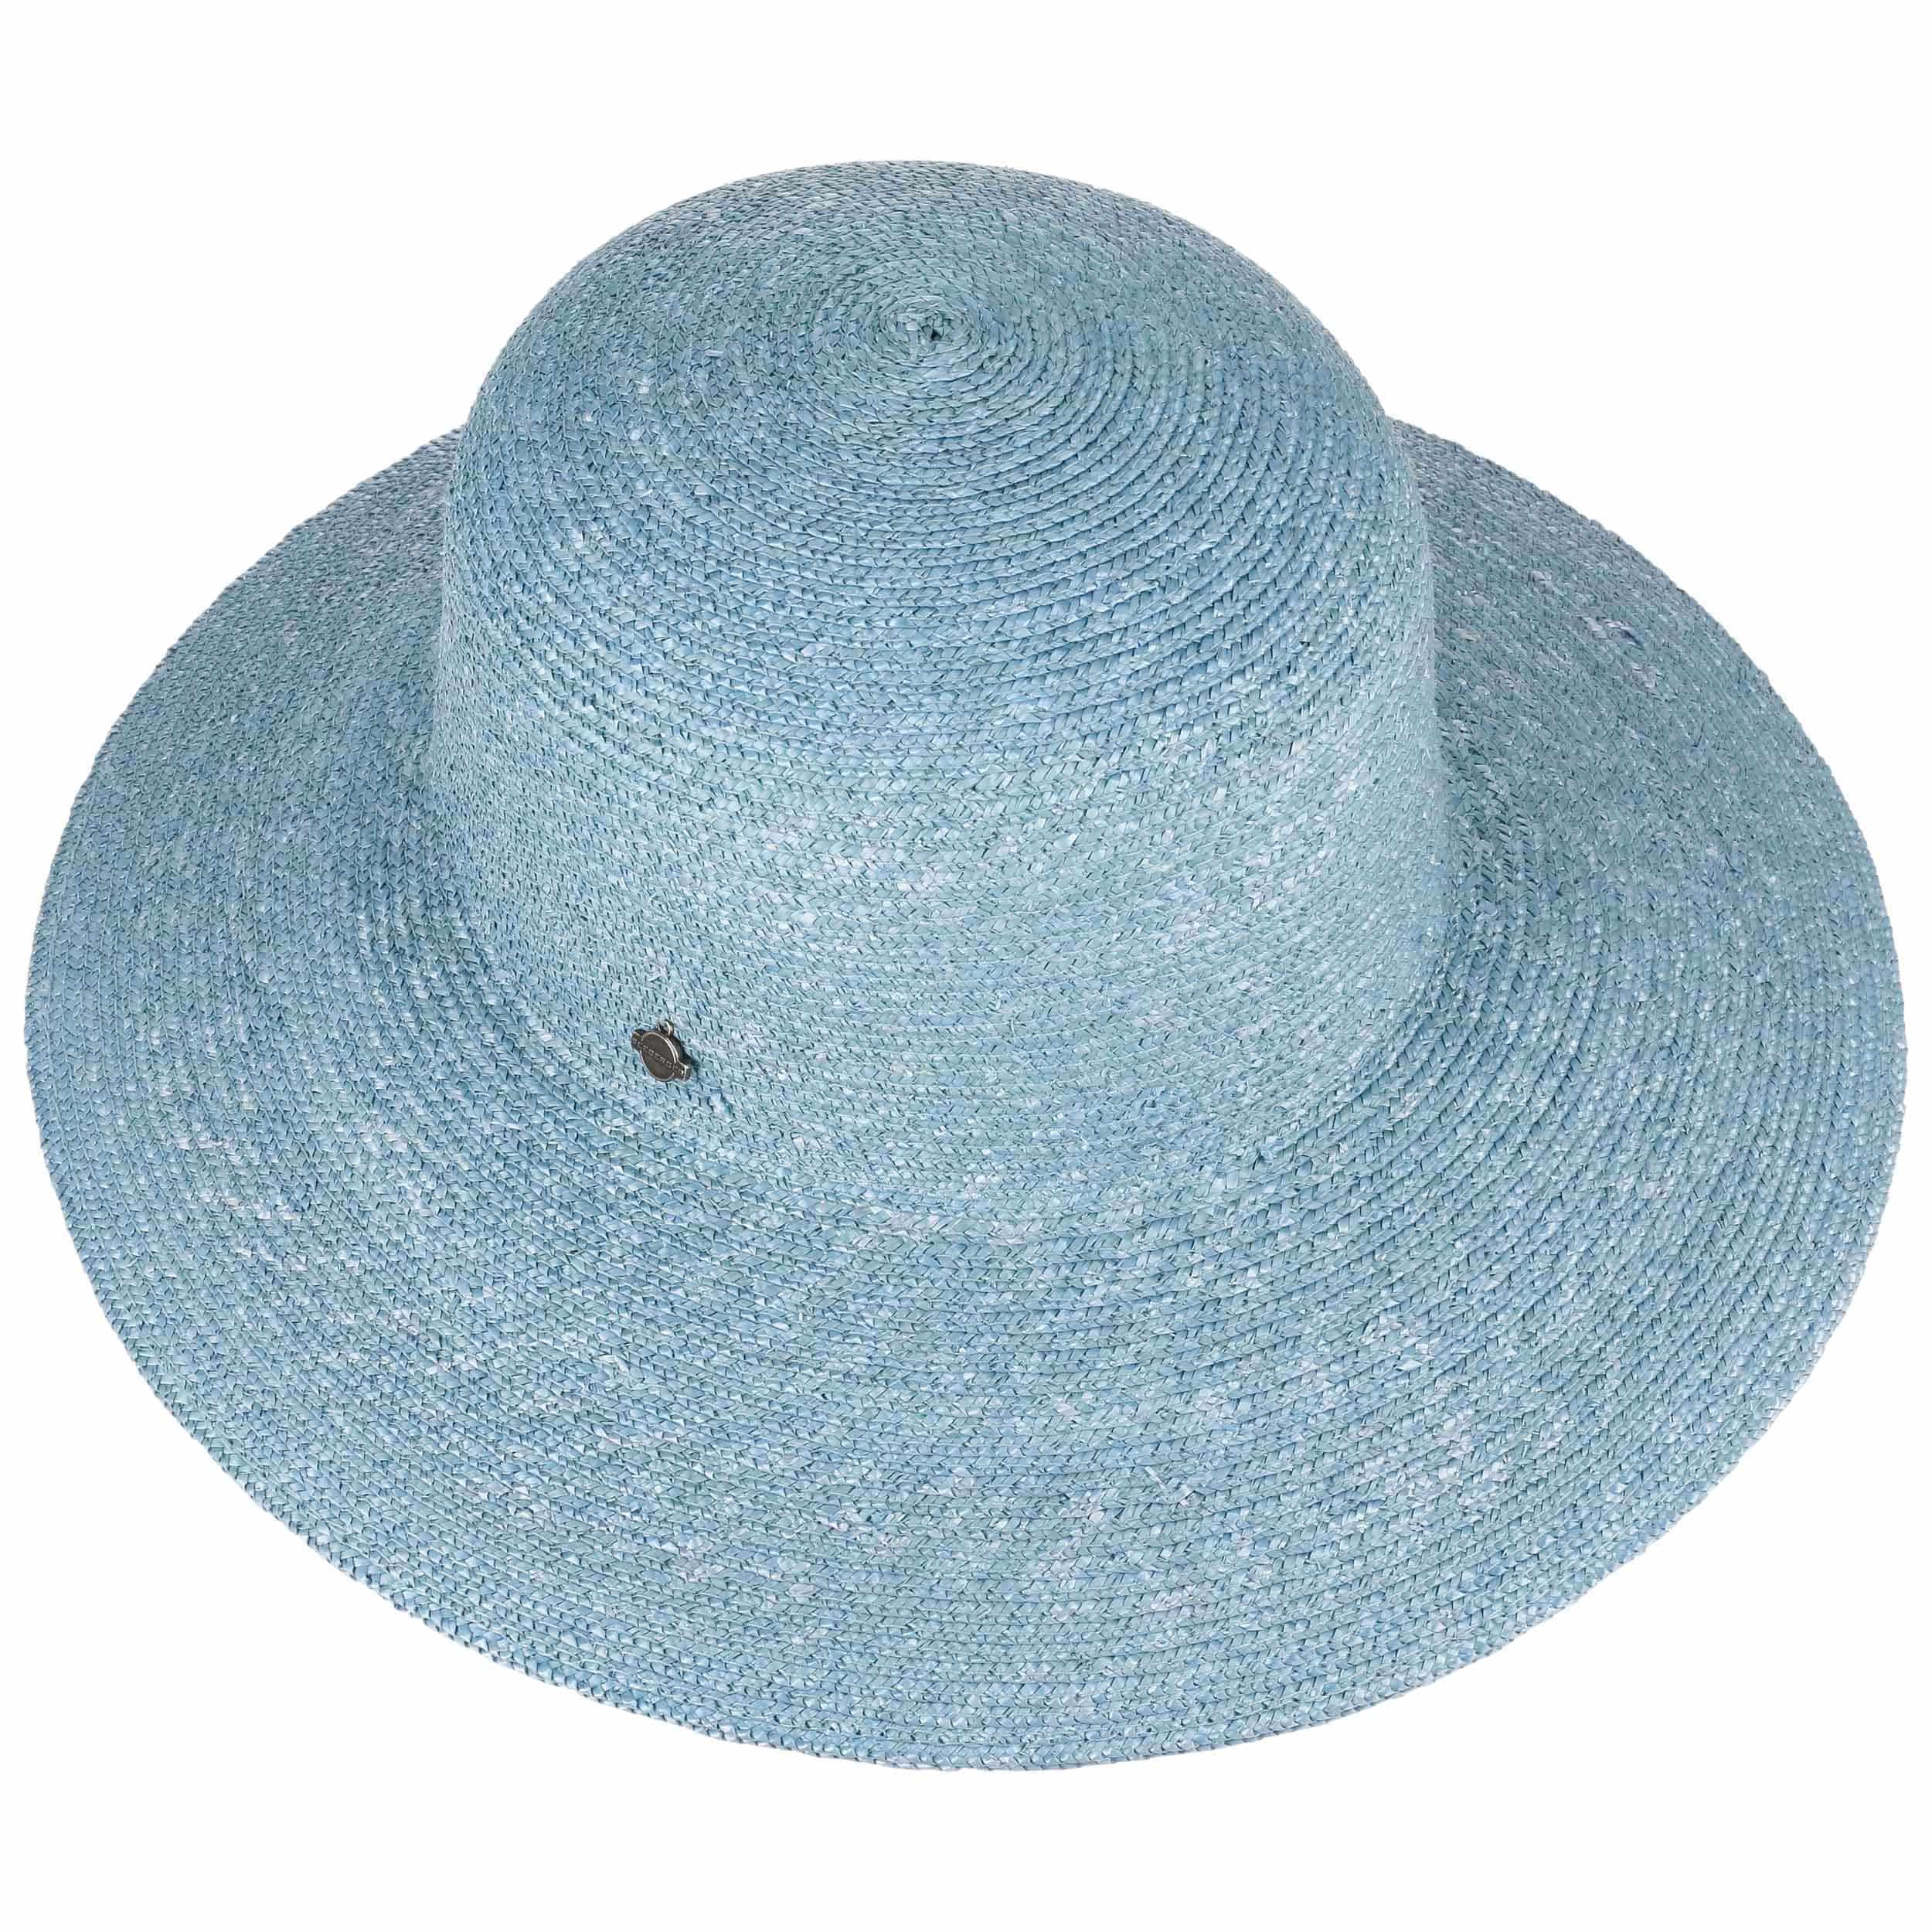 ... Lina Floppy Hat UV Protection by Seeberger - light blue 1 ... 48cee32e4d0